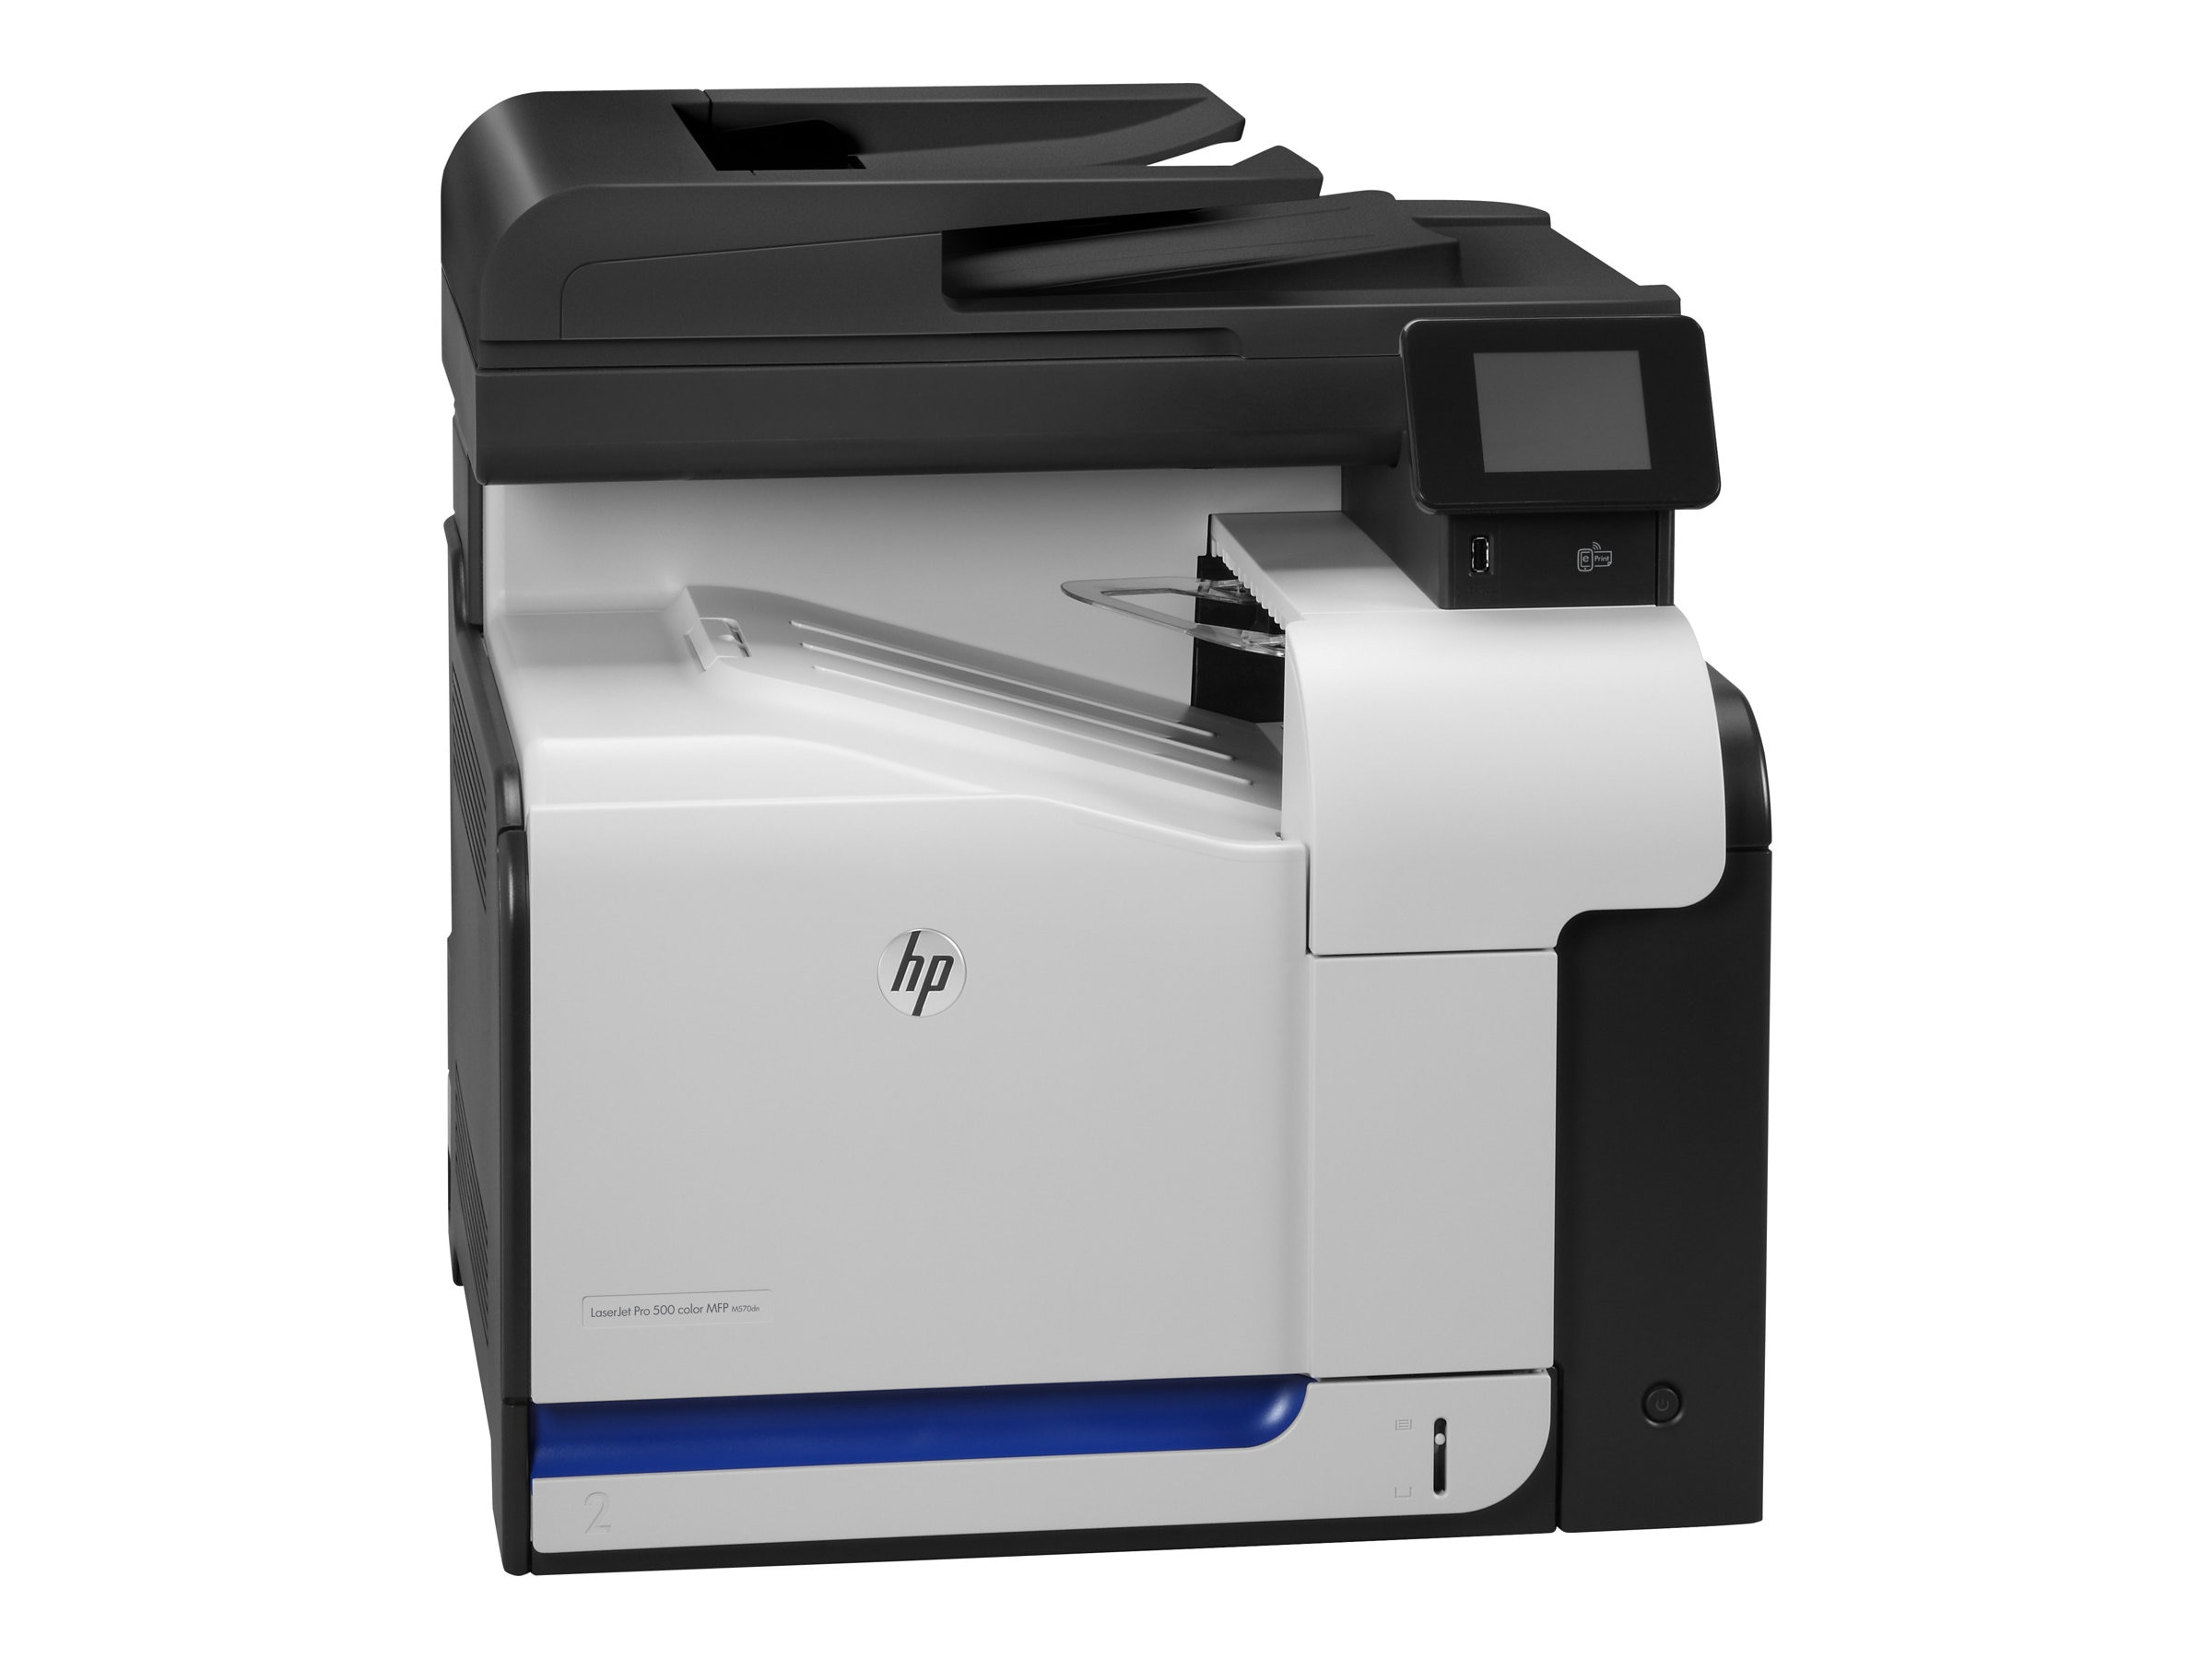 HP LaserJet Pro 500 color MFP M570dn $999 - $250 instant rebate = $749 expires 2 29 16